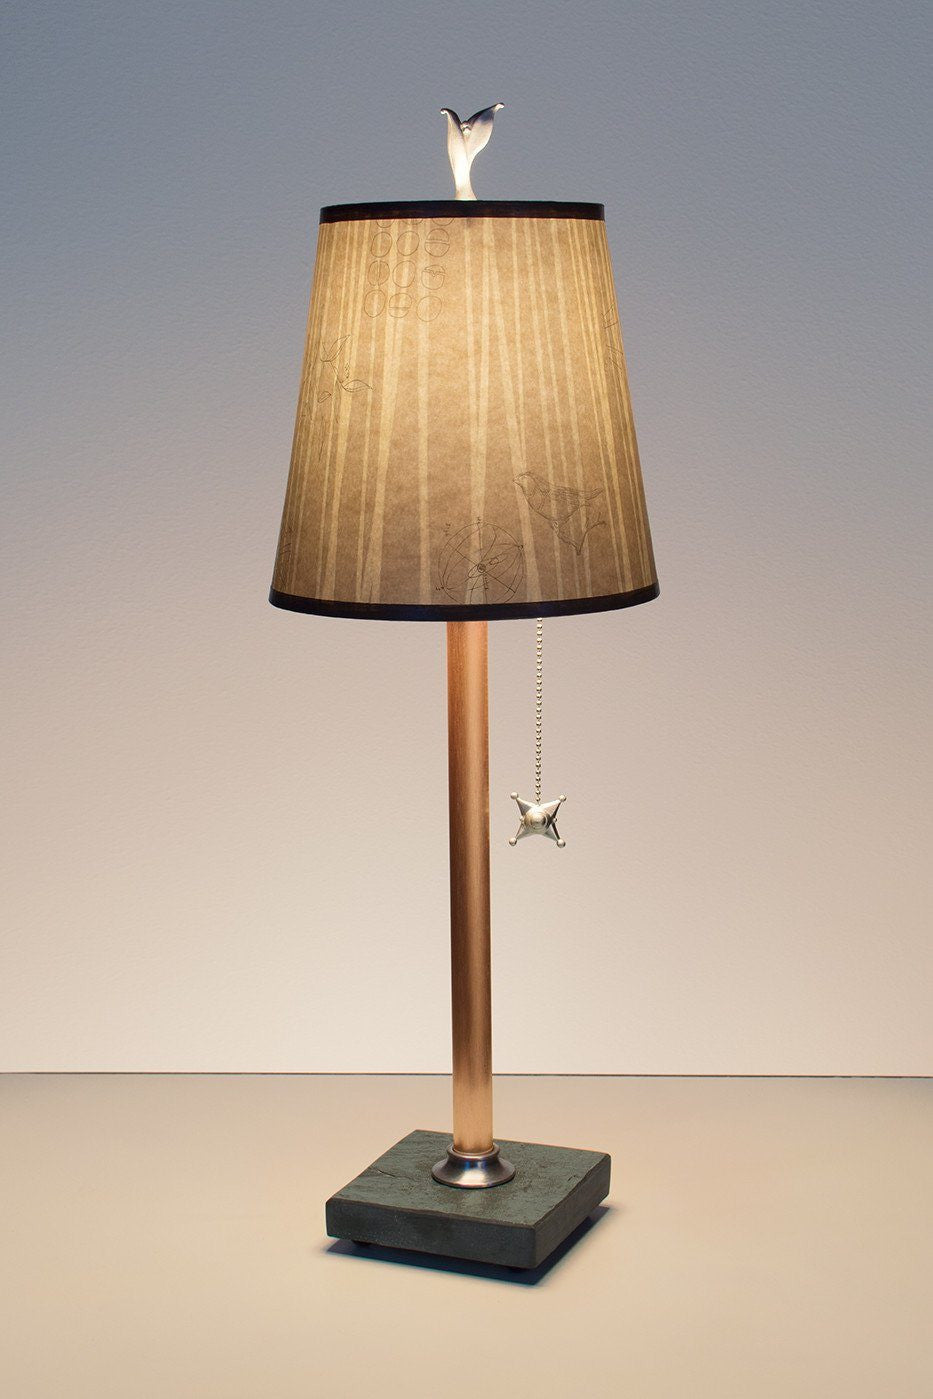 copper table lamp on vermont slate base with small drum shade in birch lit